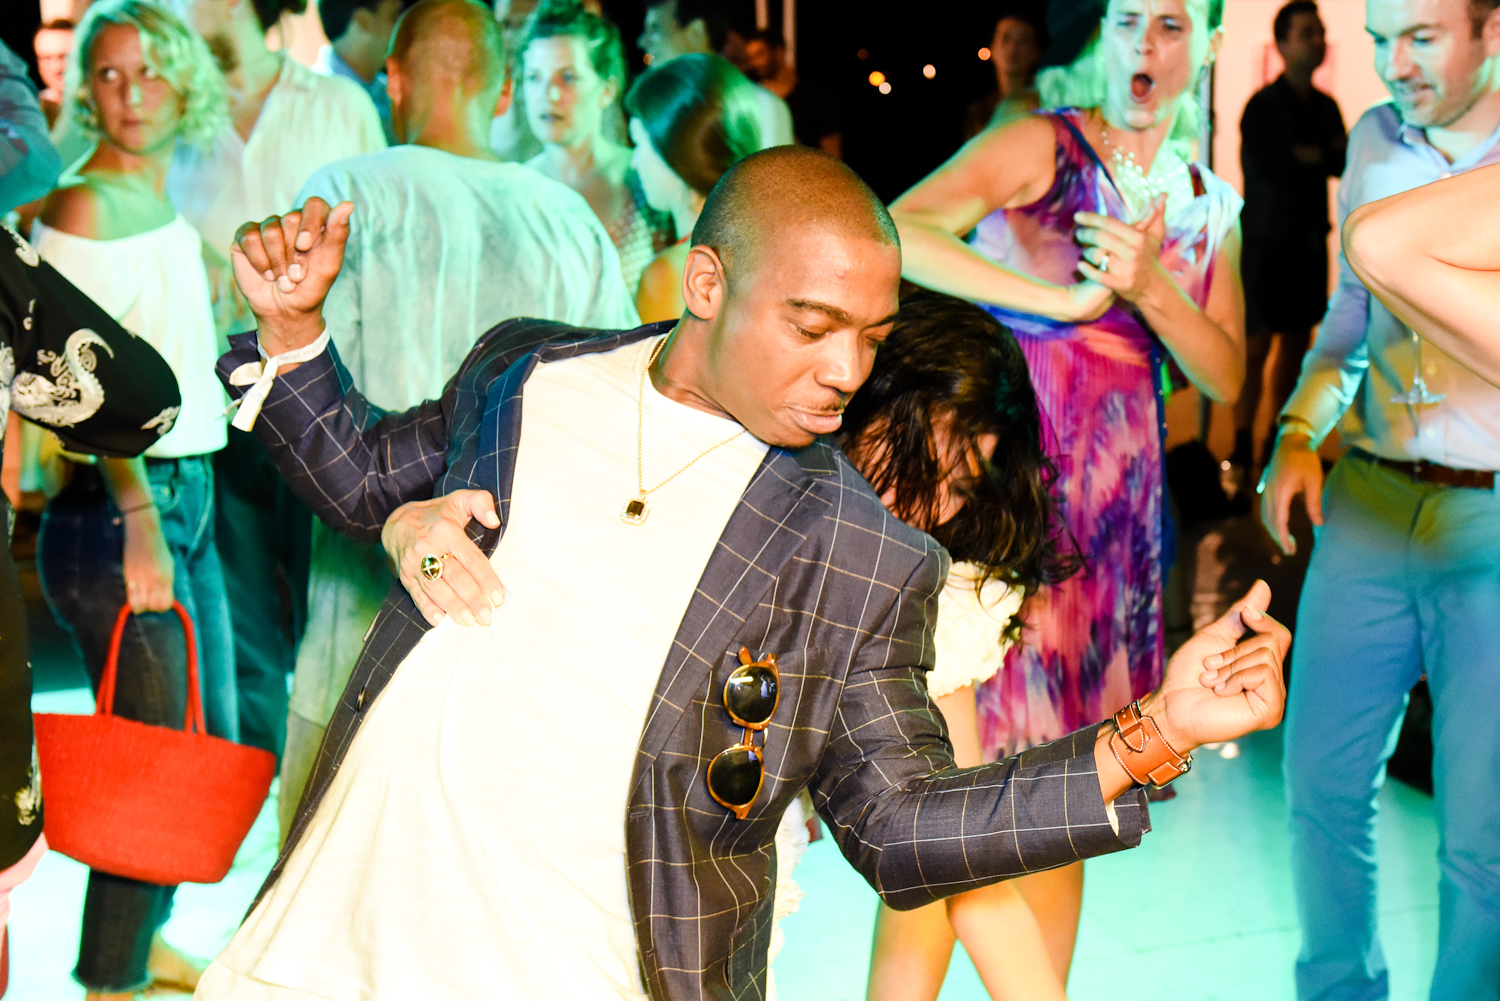 Watermill Center - Fada: House of Madness - Annual Benefit 2016 - Ja Rule, Lisa Anastos - Photo by BFA